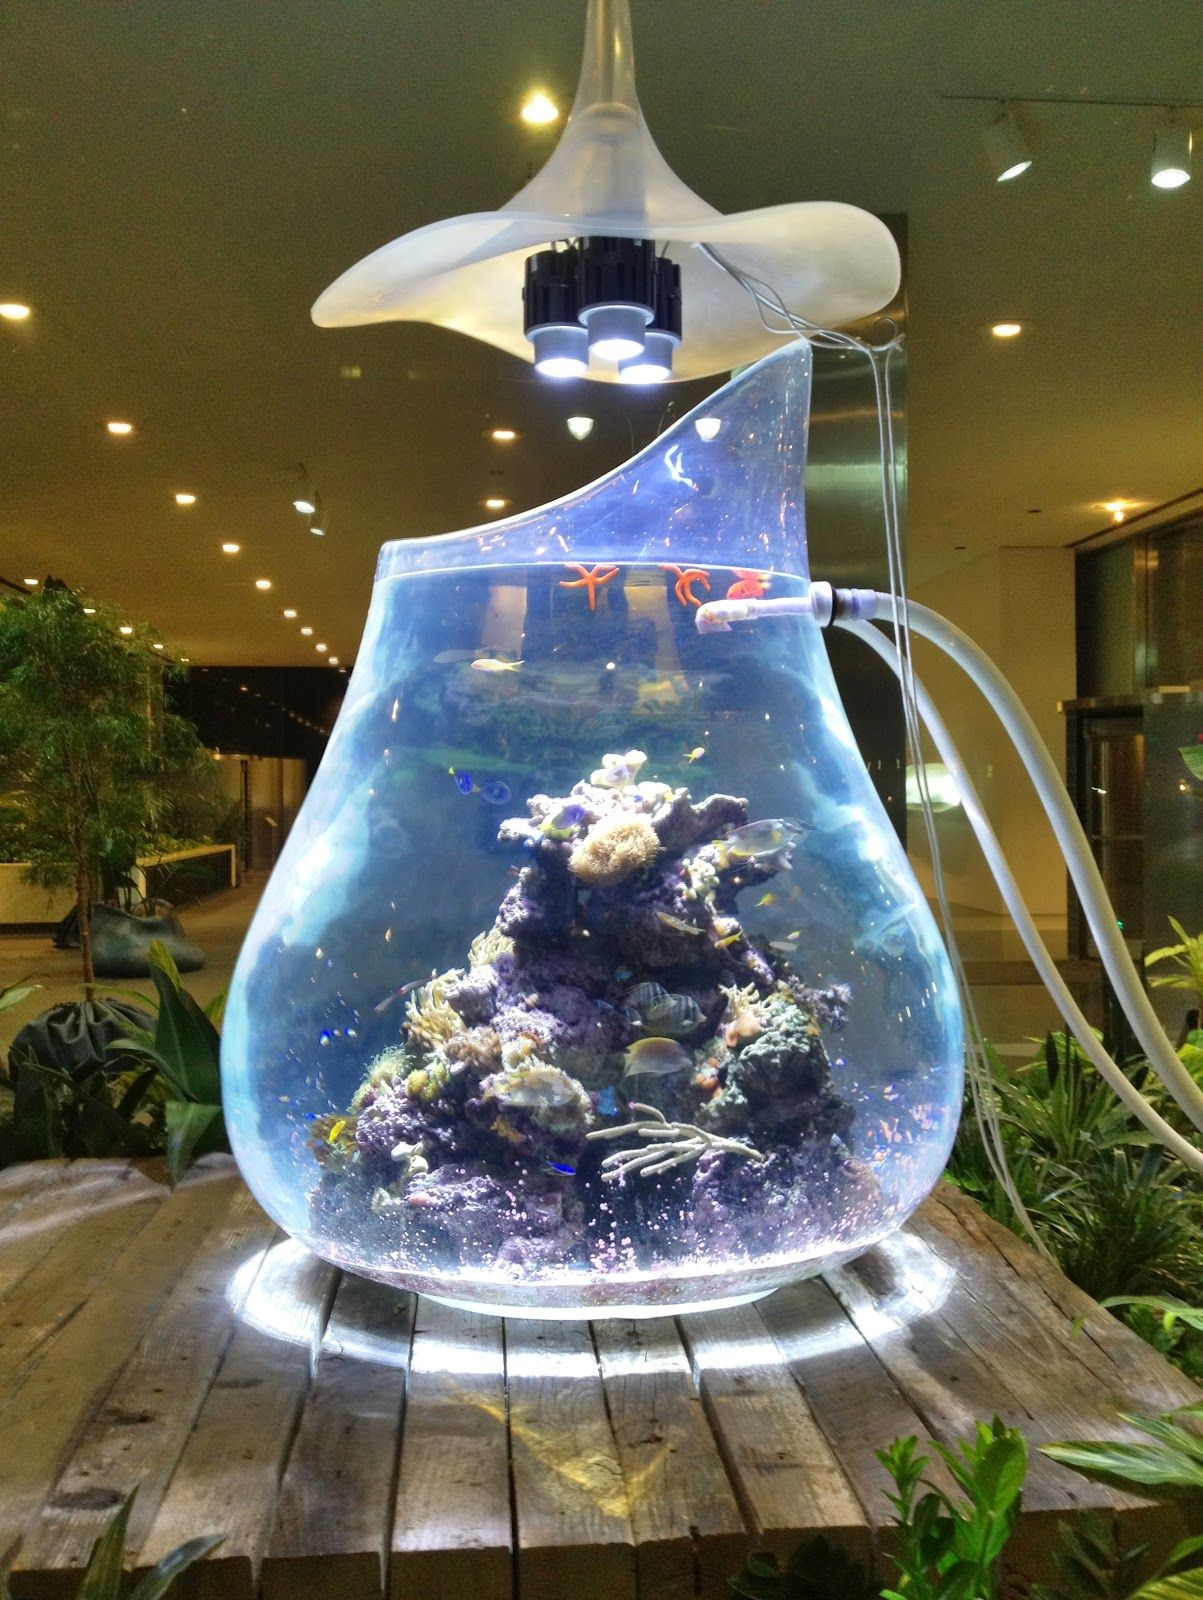 Aquarium Living Room Decor: Wondrous Aquarium-in-the-round By Paula Hayes